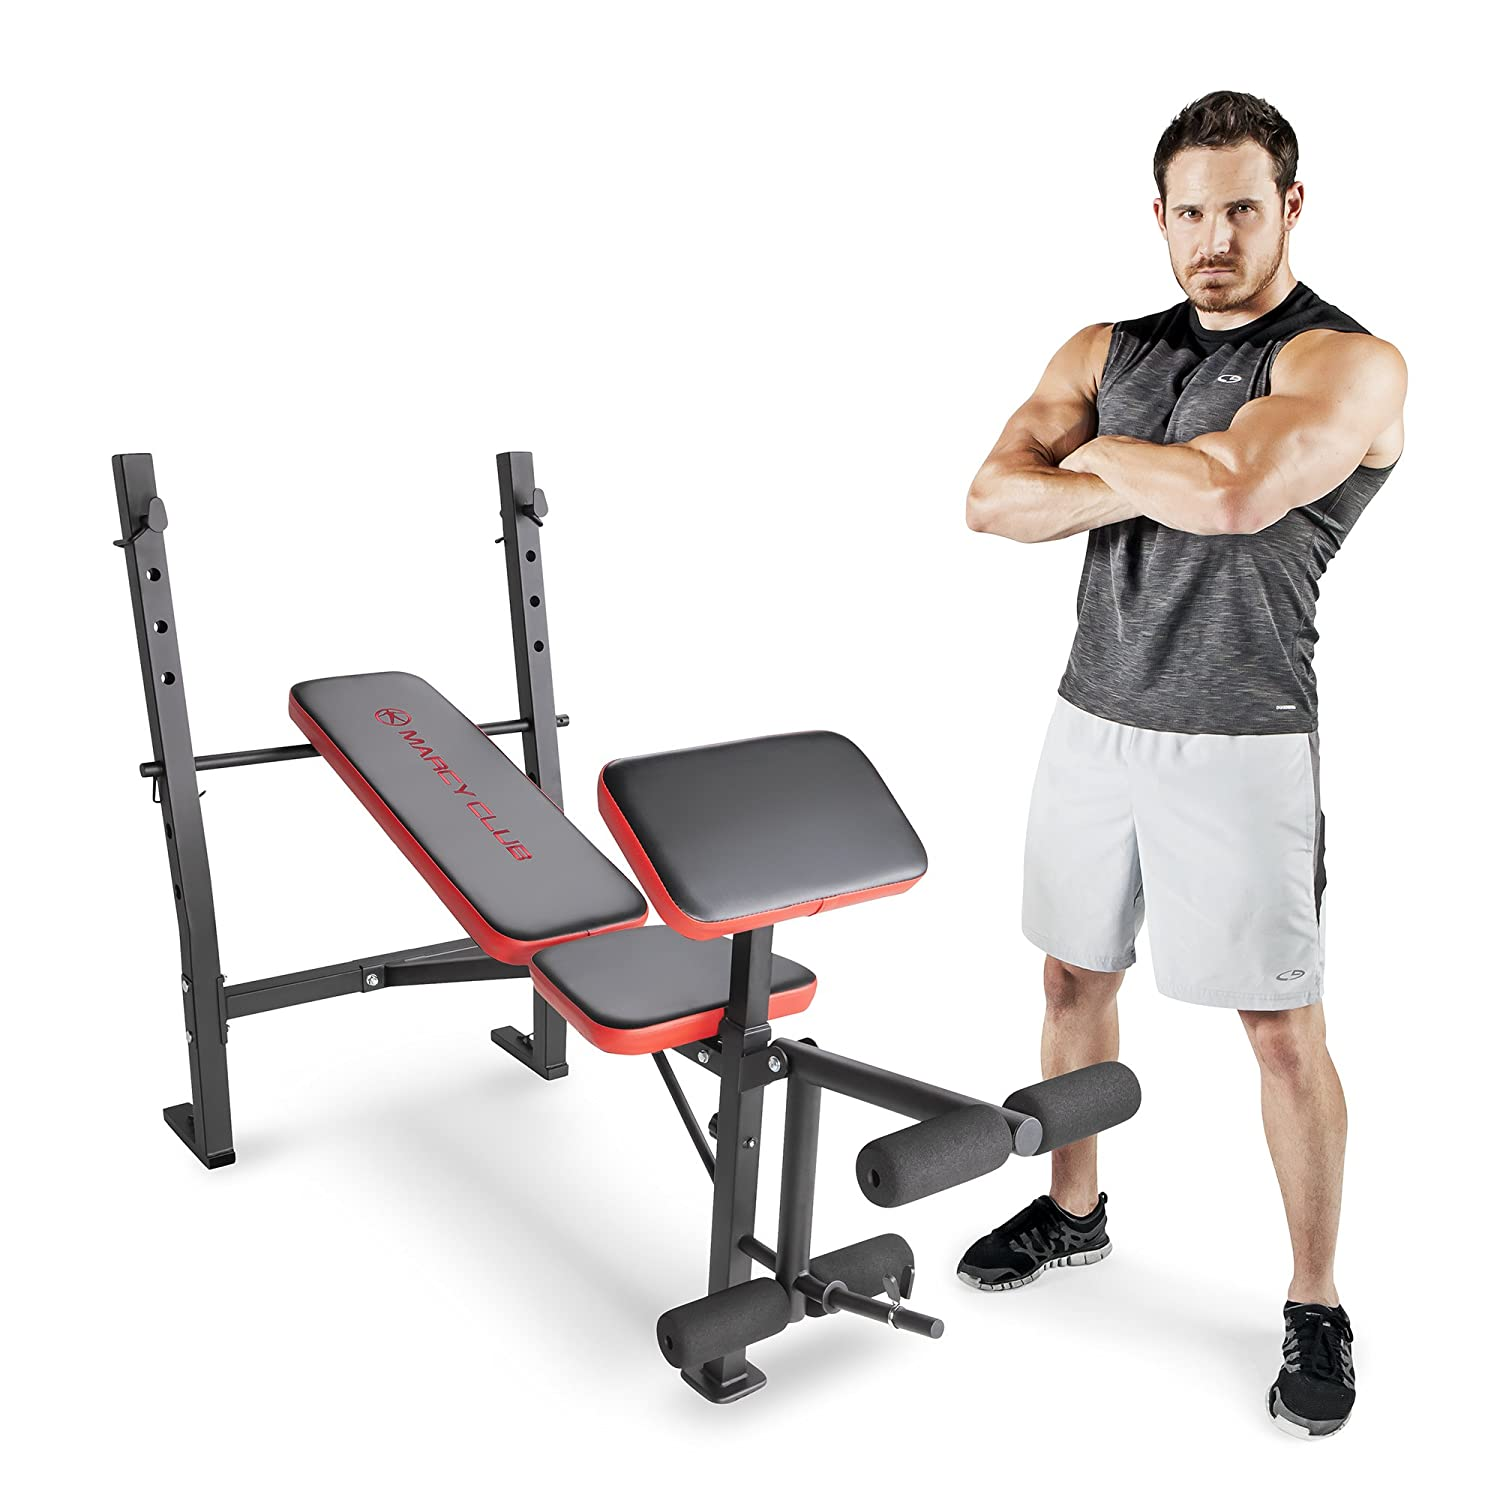 Marcy MKB-4873 Adjustable Standard Weight Bench with Leg Developer for Weight Lifting & Strength Training Impex Inc. - DROPSHIP